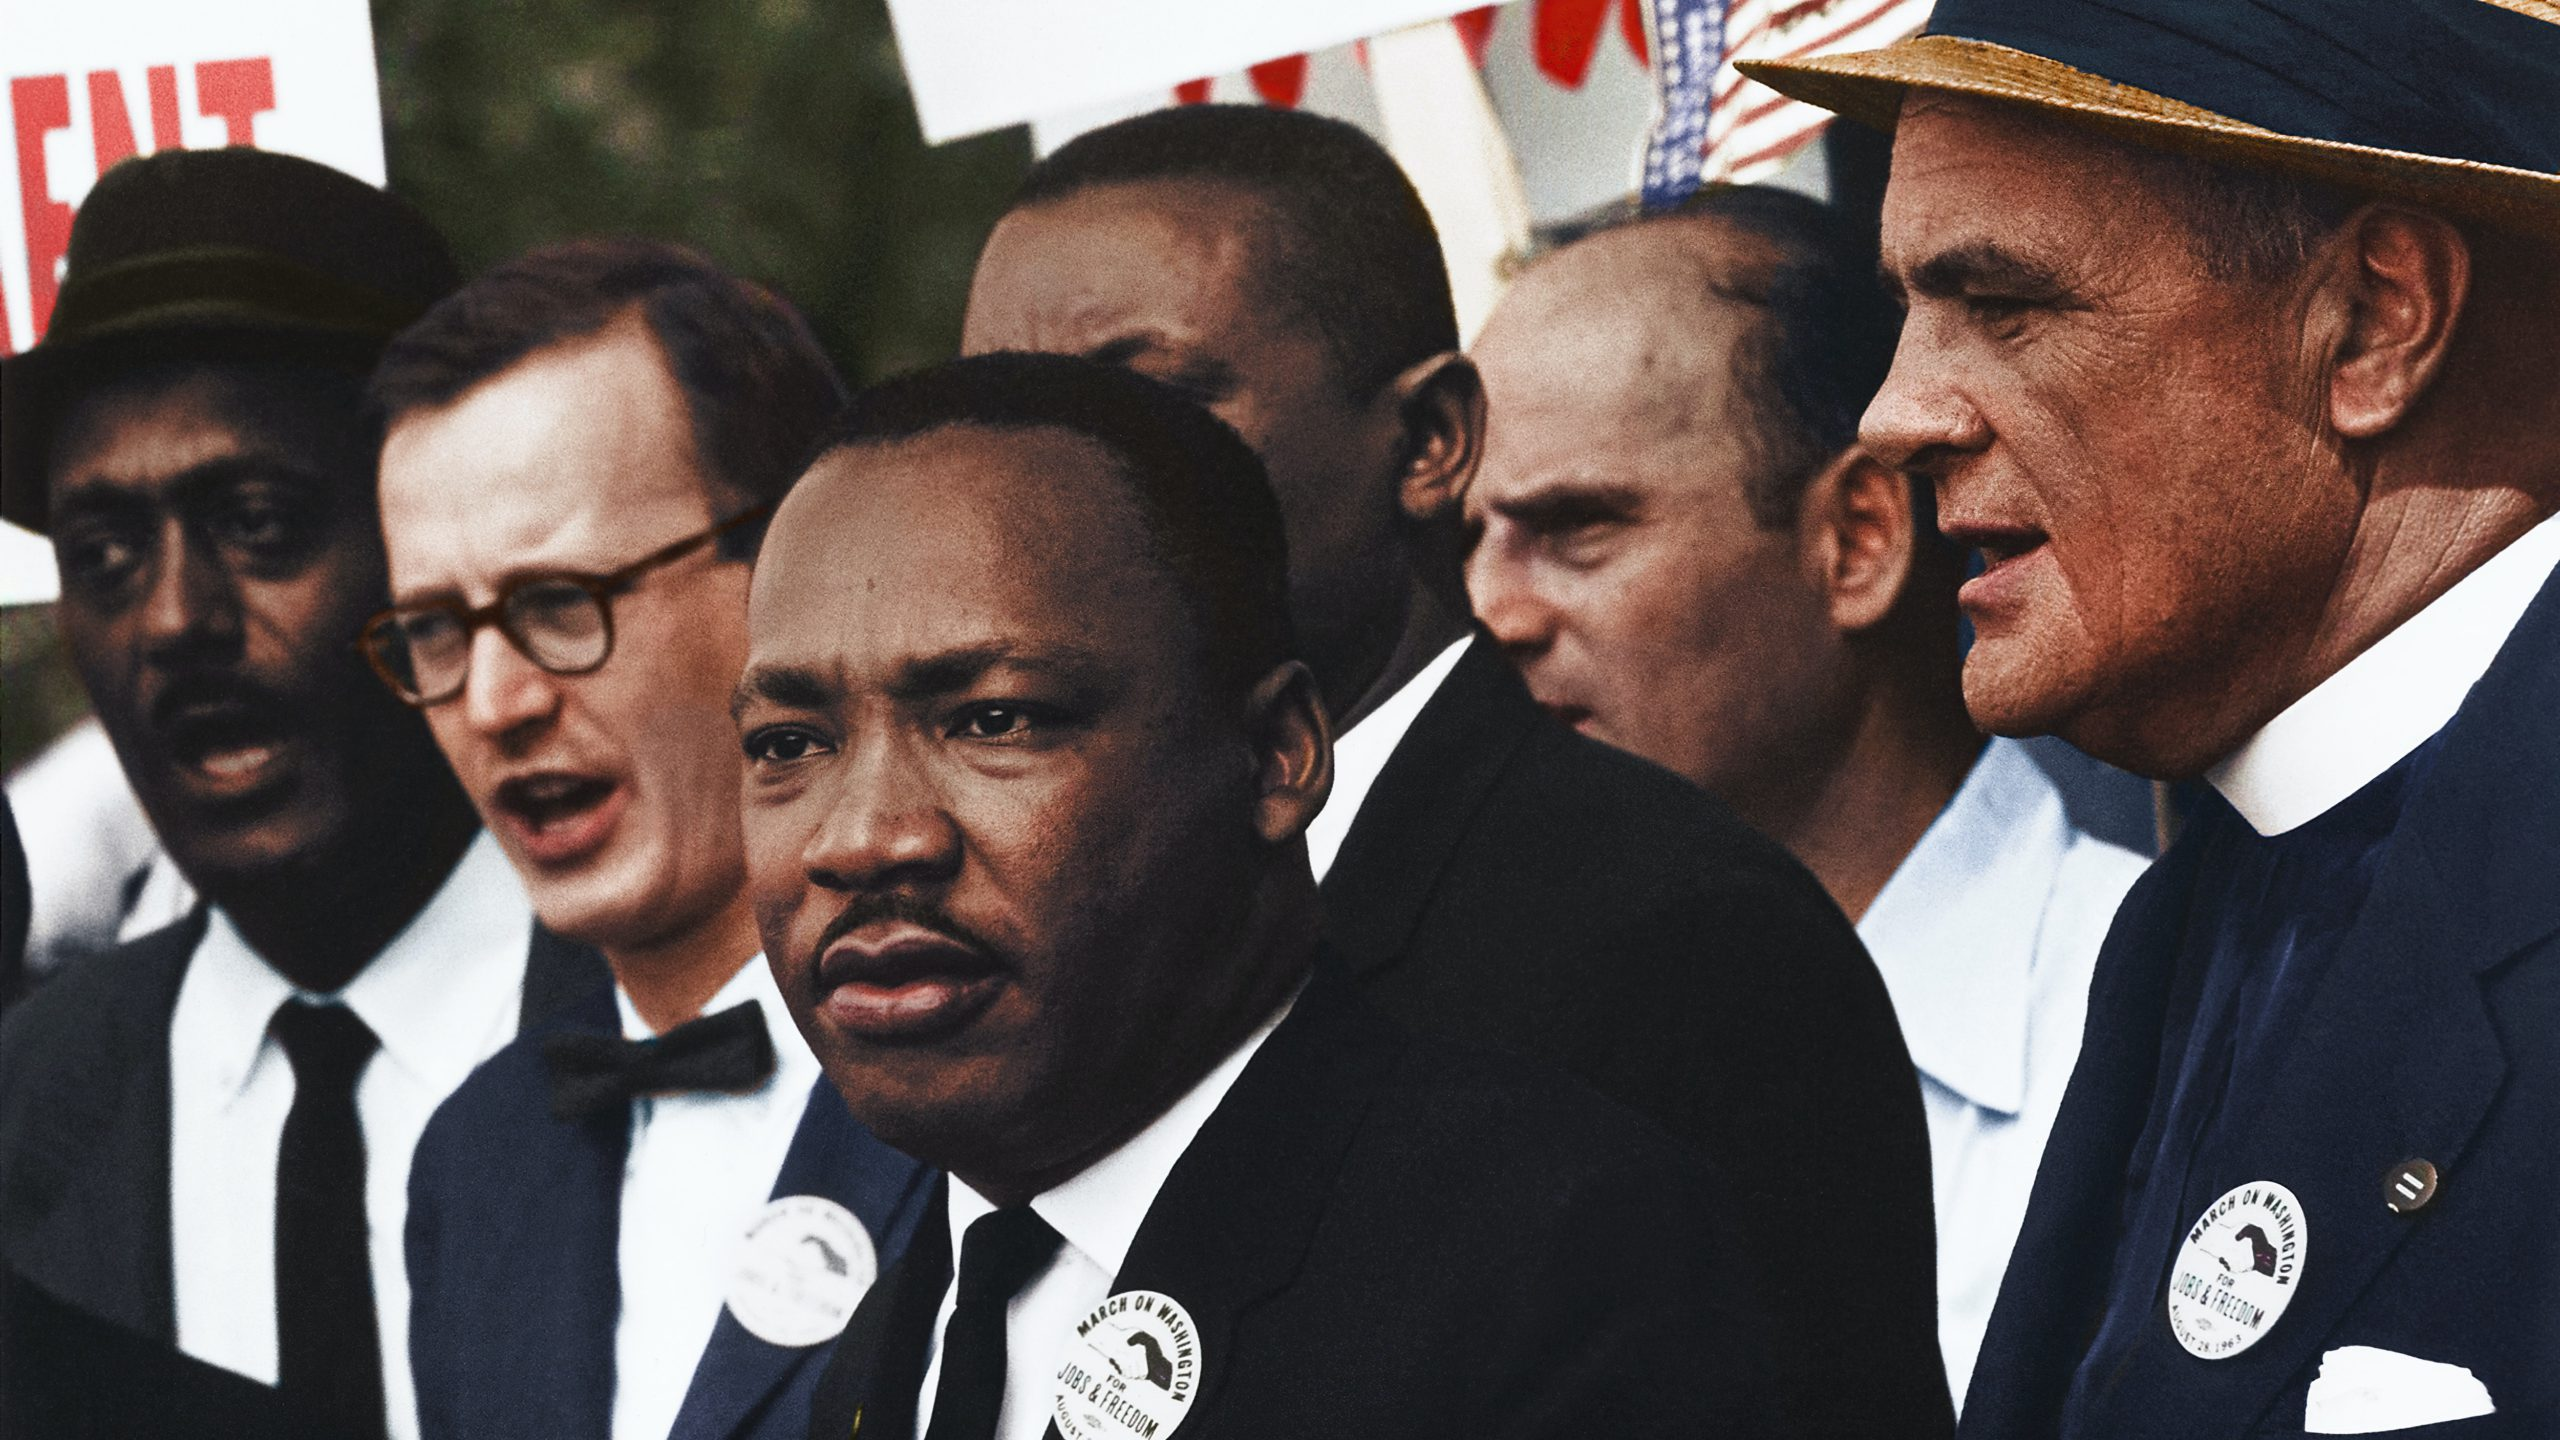 Honoring Dr. King By a Day of Service